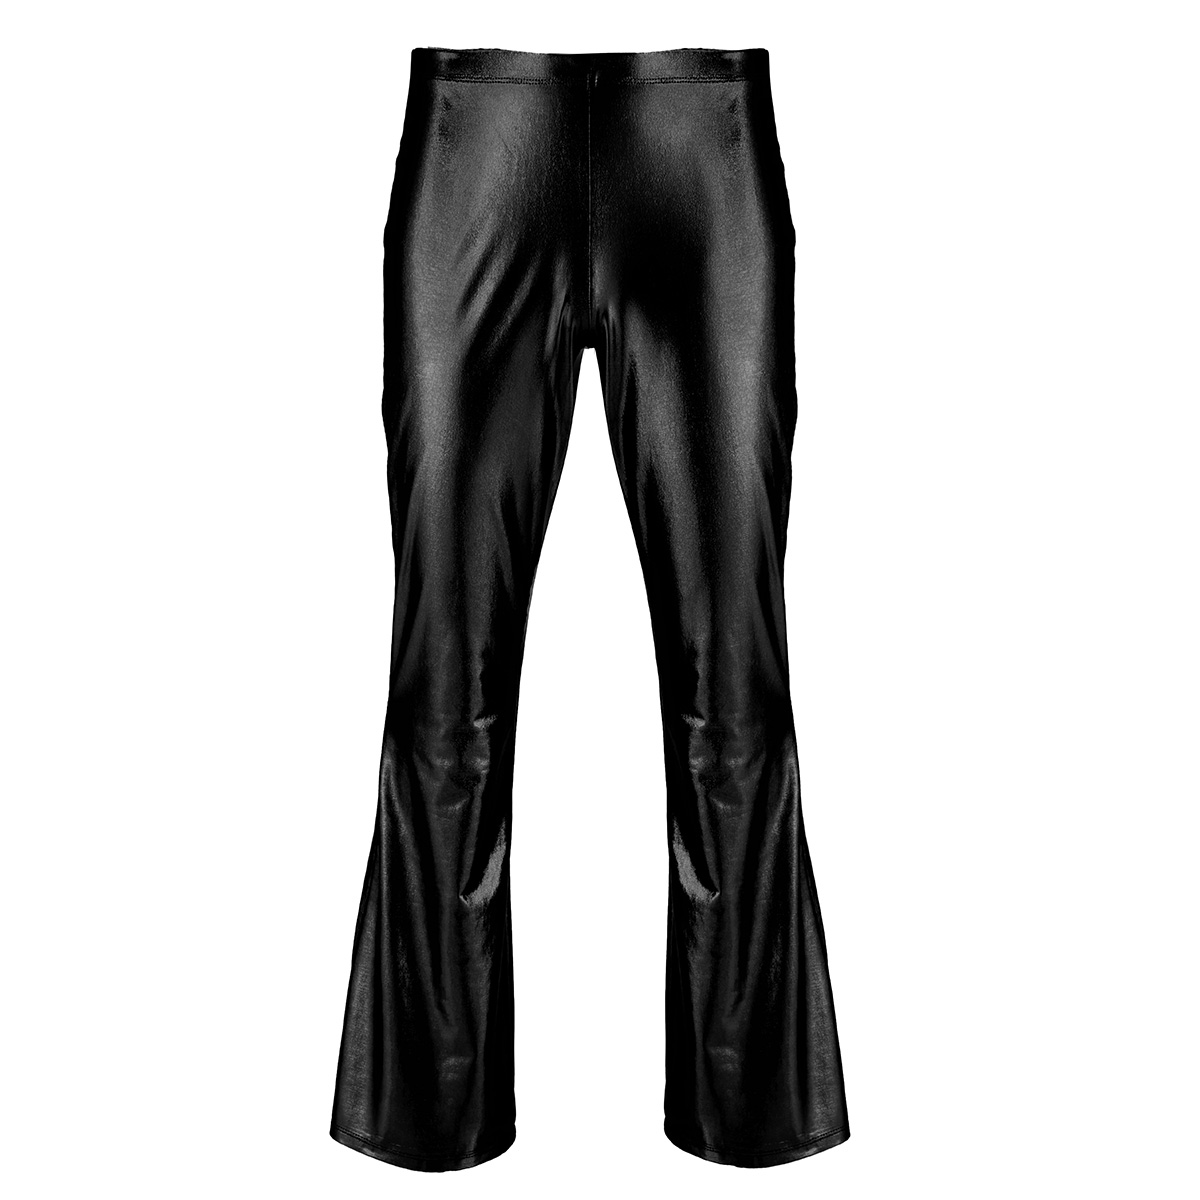 Adult Mens Moto Punk Style Party Pants Shiny Metallic Disco Pants with Bell Bottom Flared Long Pants Dude Costume Trousers 14